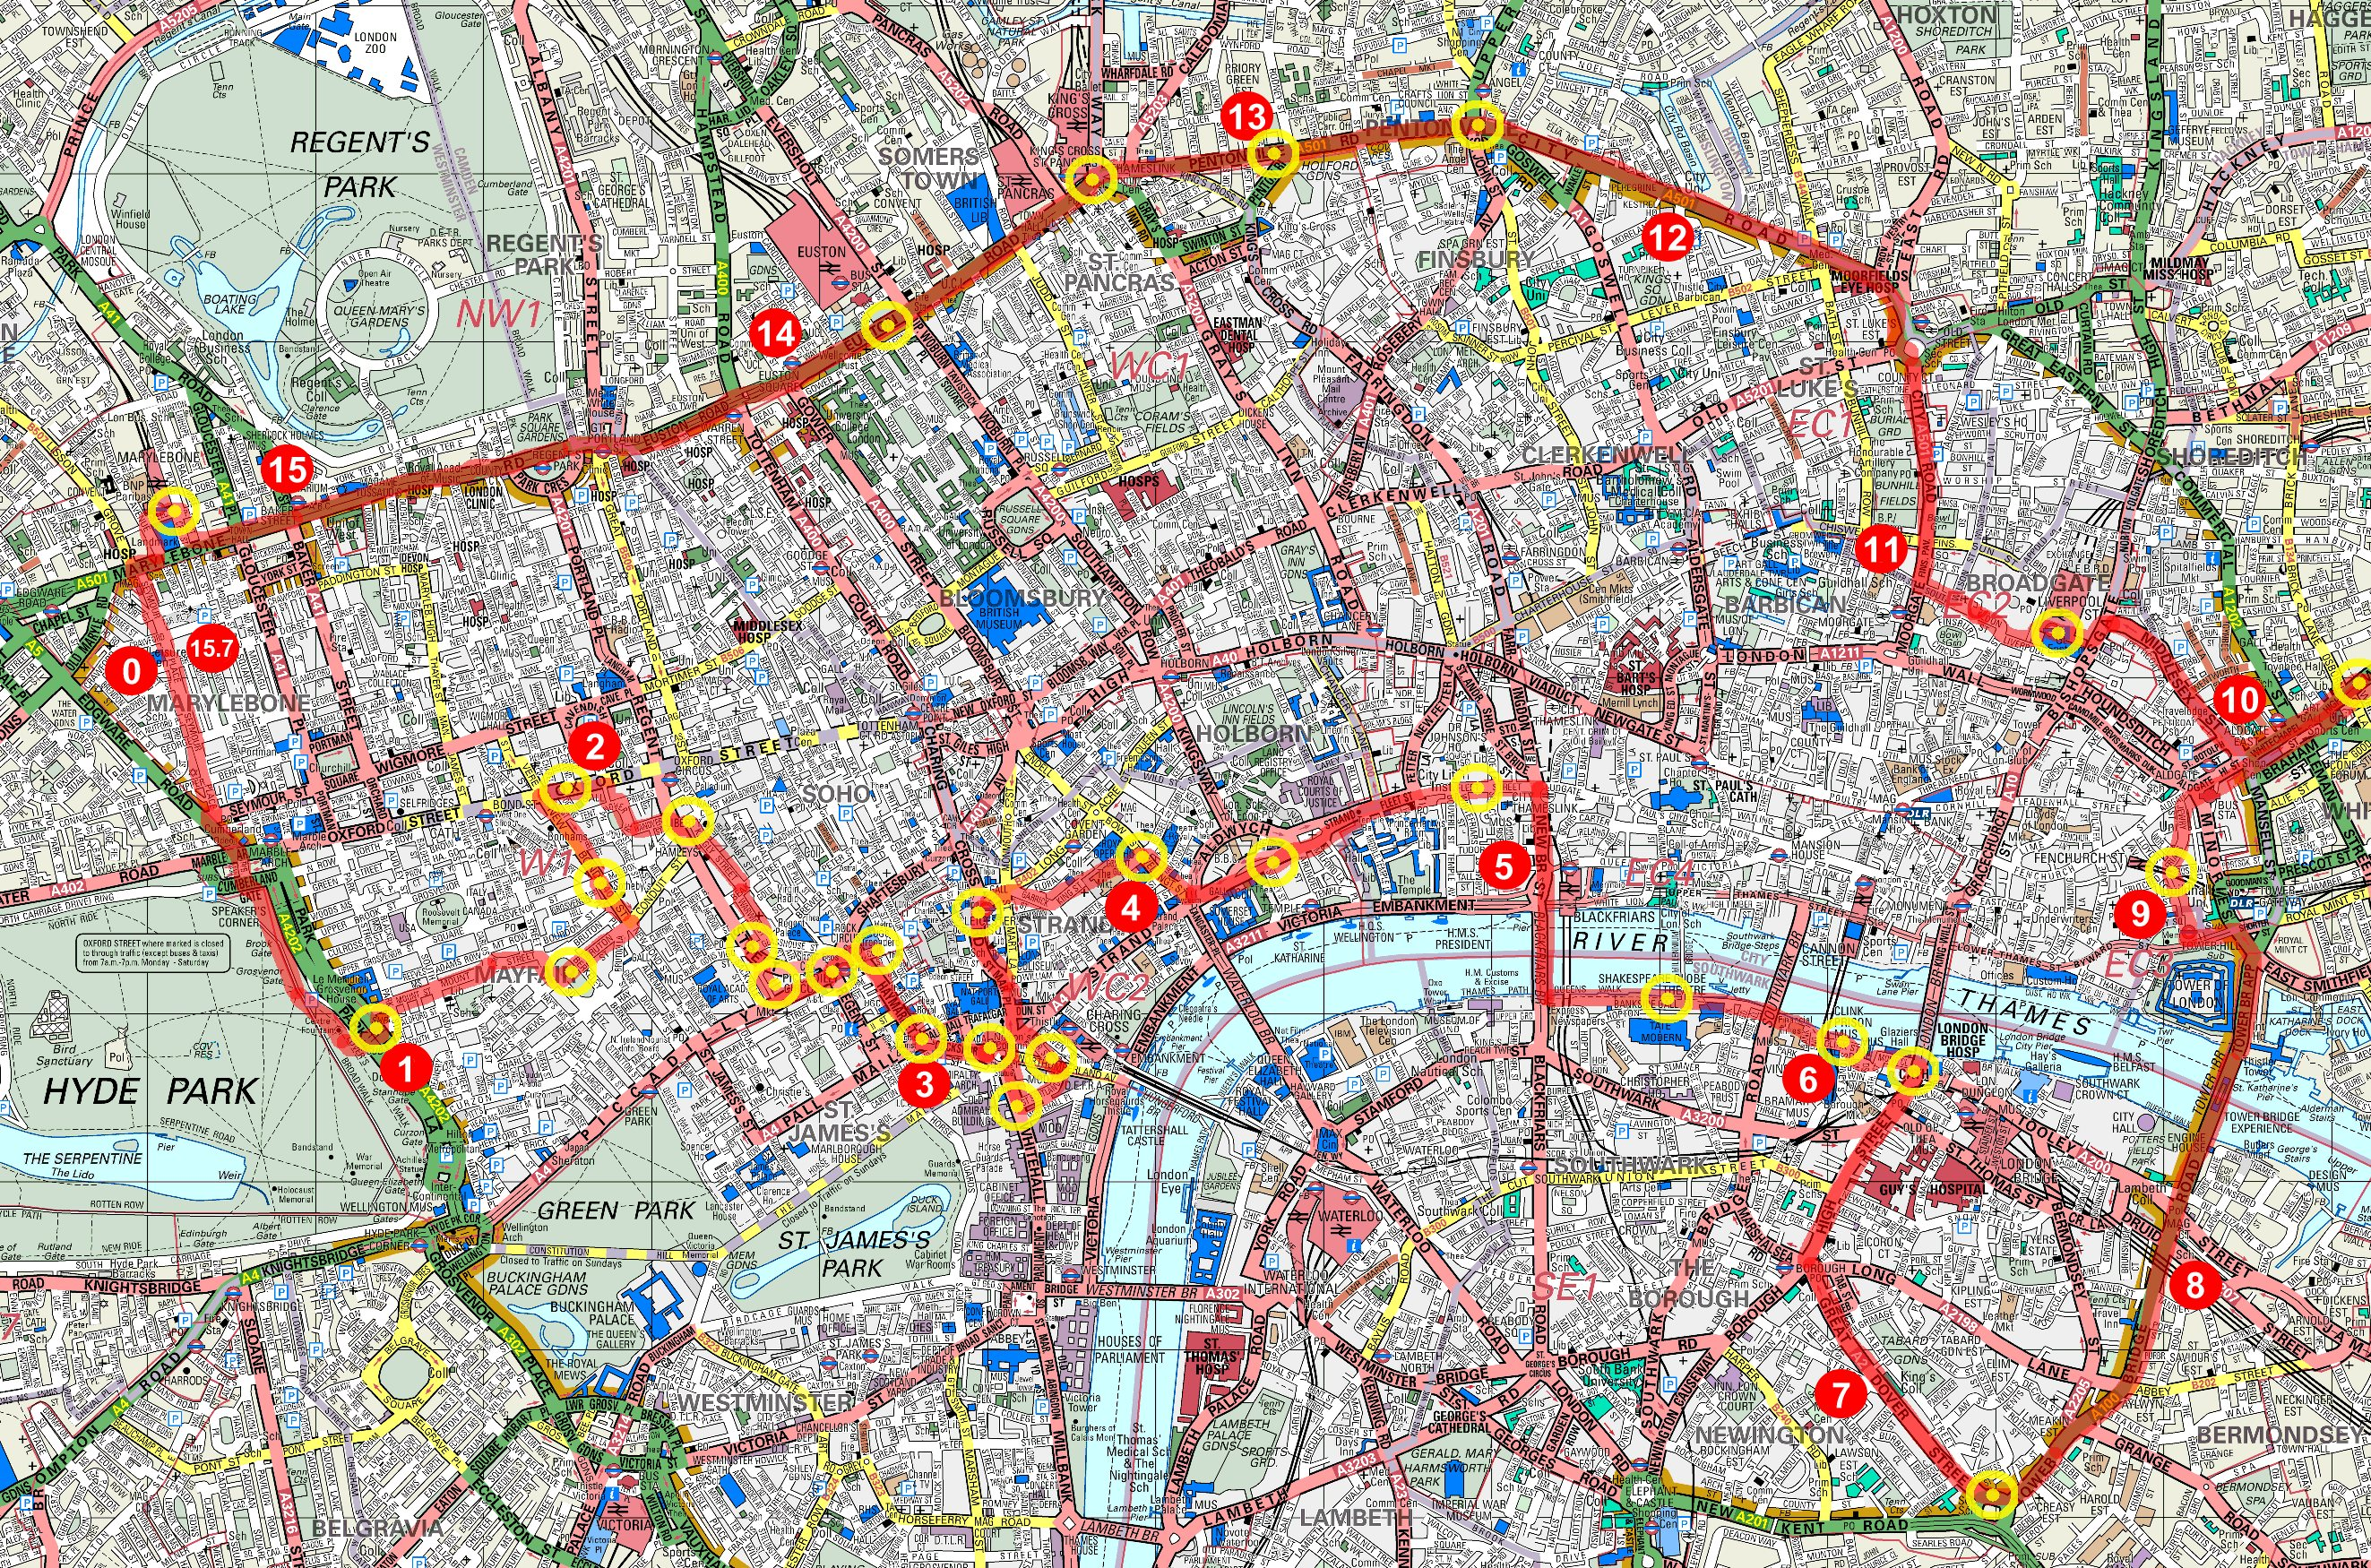 Serpentine running club running monopoly run large scale map publicscrutiny Image collections